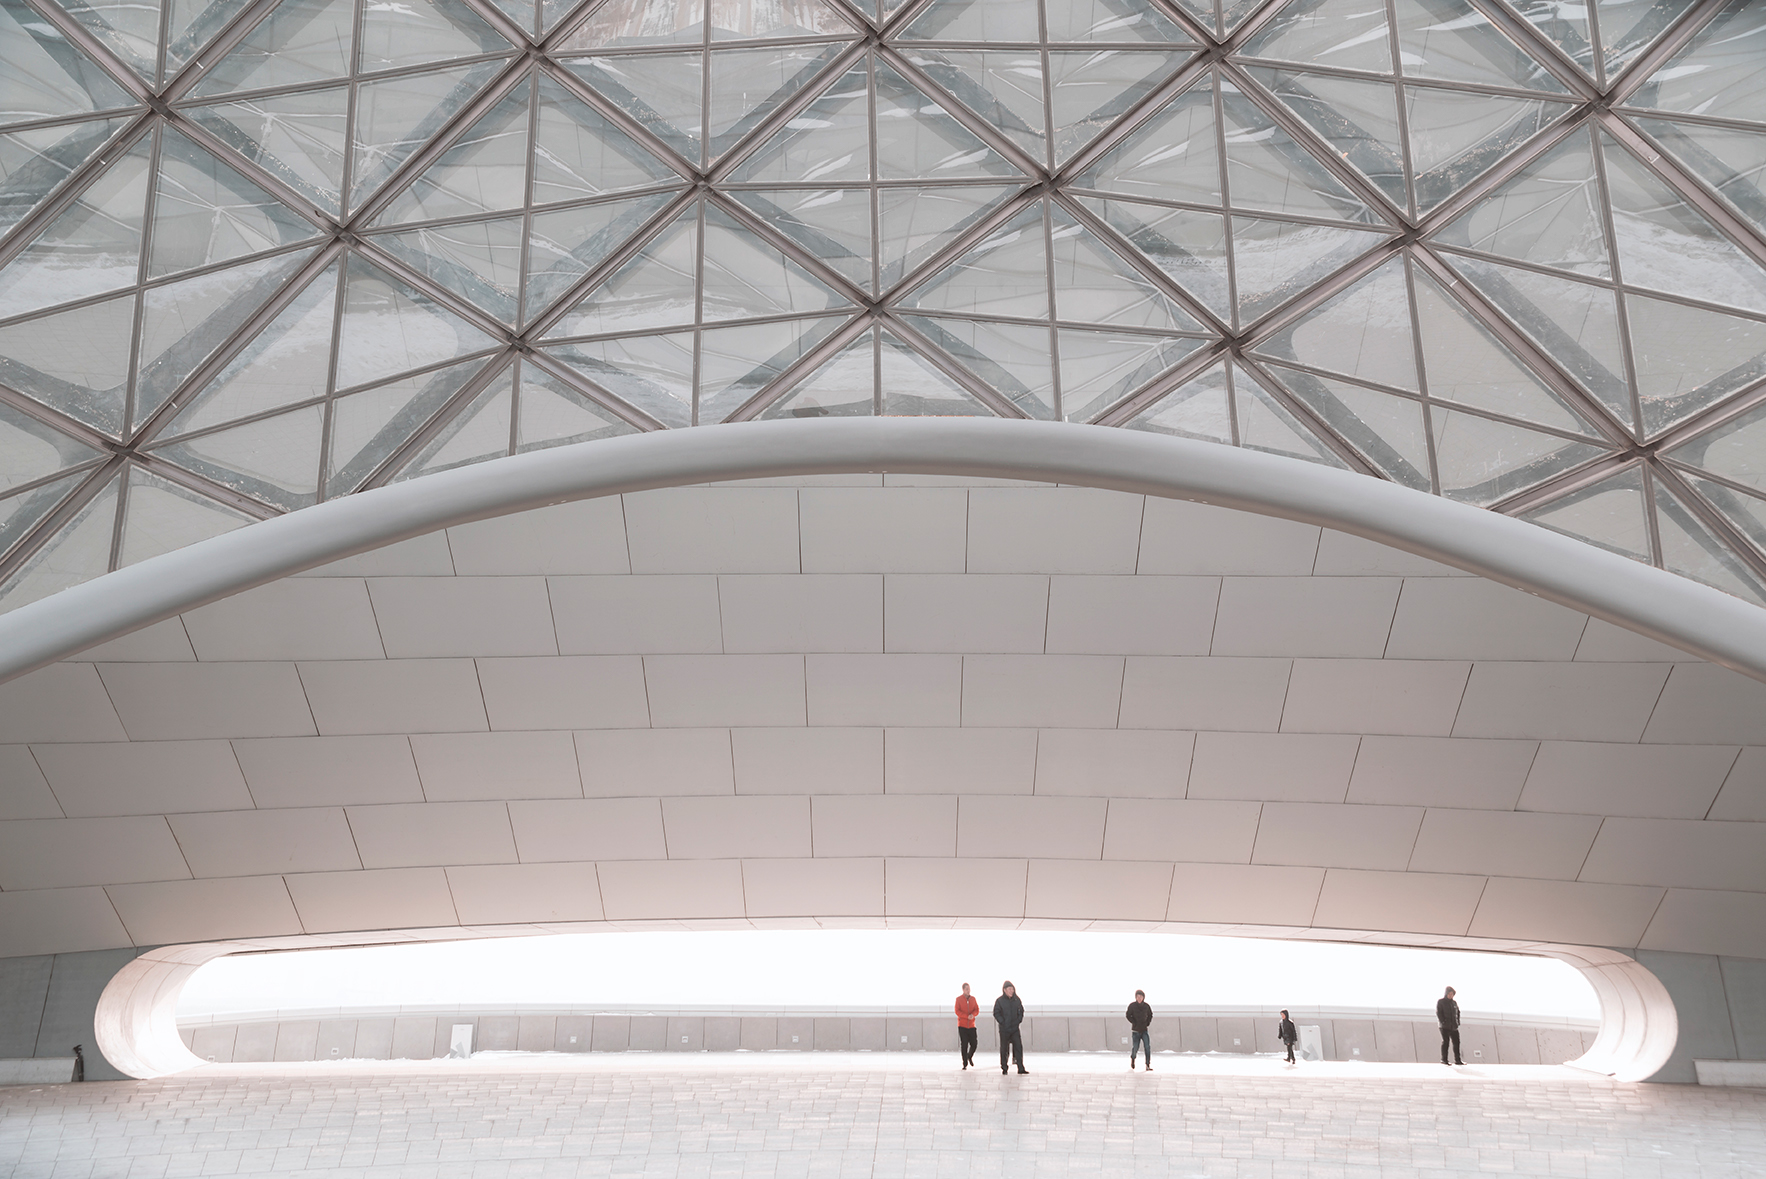 Exploring the Harbin Grand Theatre in Heilongjiang, China